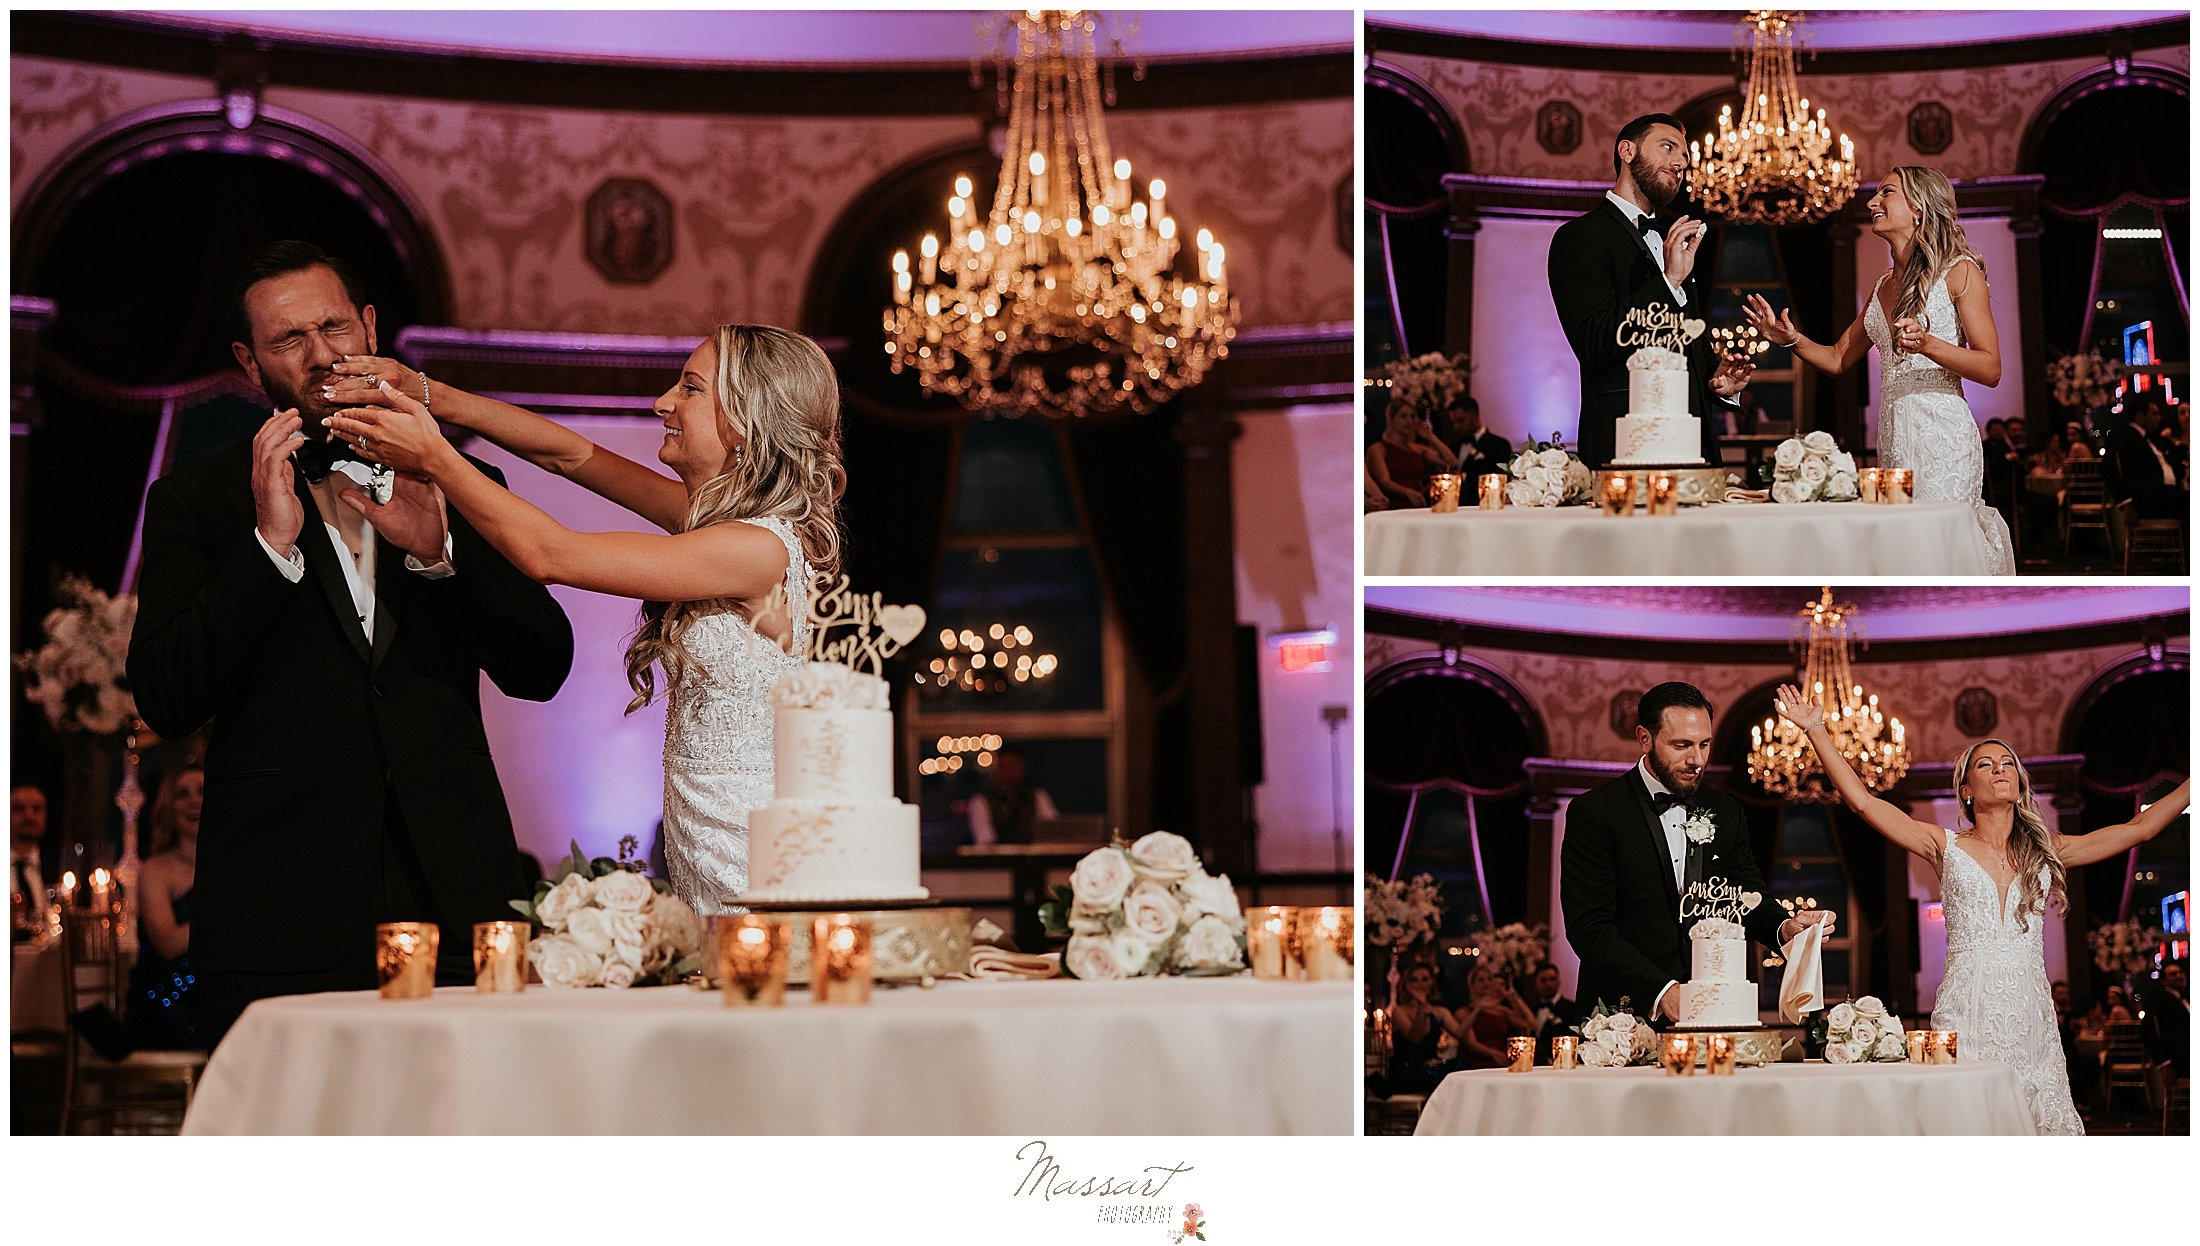 bride smashes cake into groom's face during Providence RI wedding reception